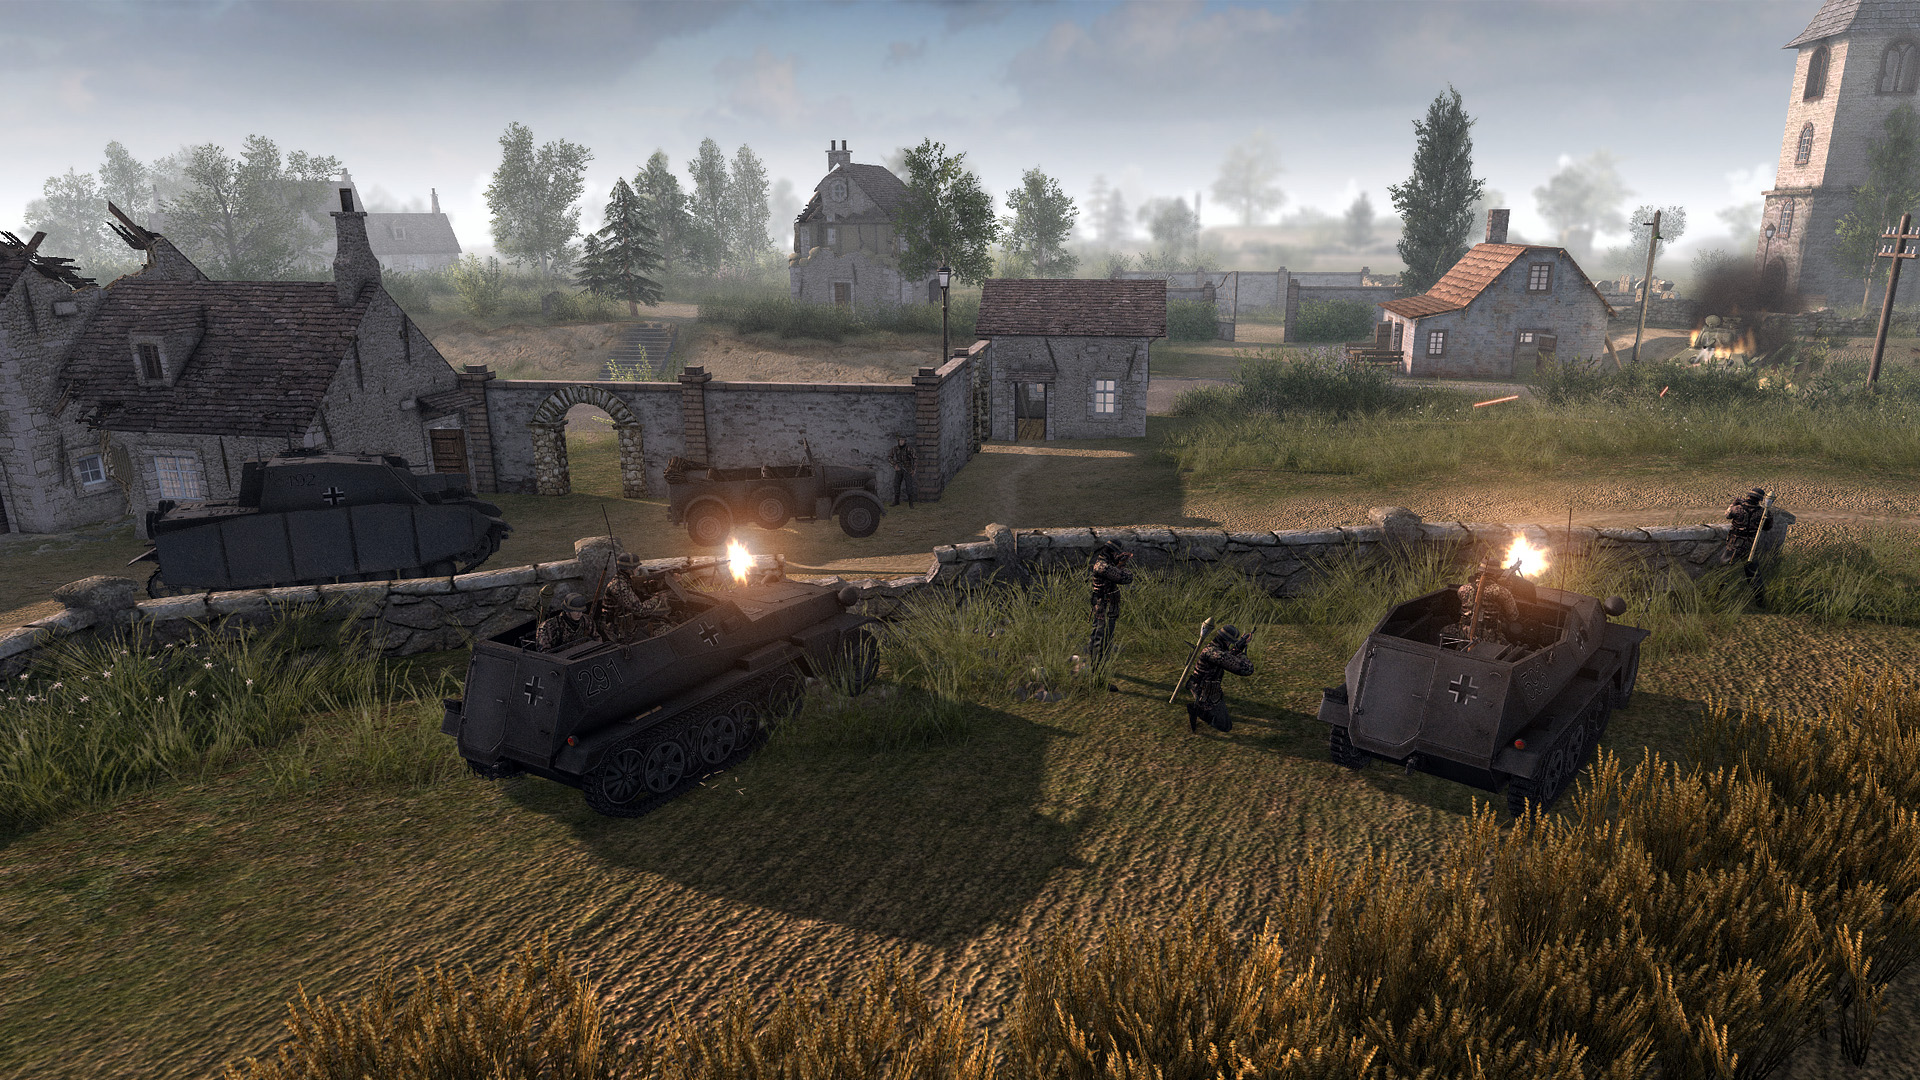 1C Company, Action, Digitalmindsoft, Men of War: Assault Squad 2, Men of War: Assault Squad 2 – Ostfront Veteranen, Men of War: Assault Squad 2 – Ostfront Veteranen Review, Military, PC, PC Review, Real-Time Strategy, RTS, simulation, Singleplayer, strategy, War, World War II